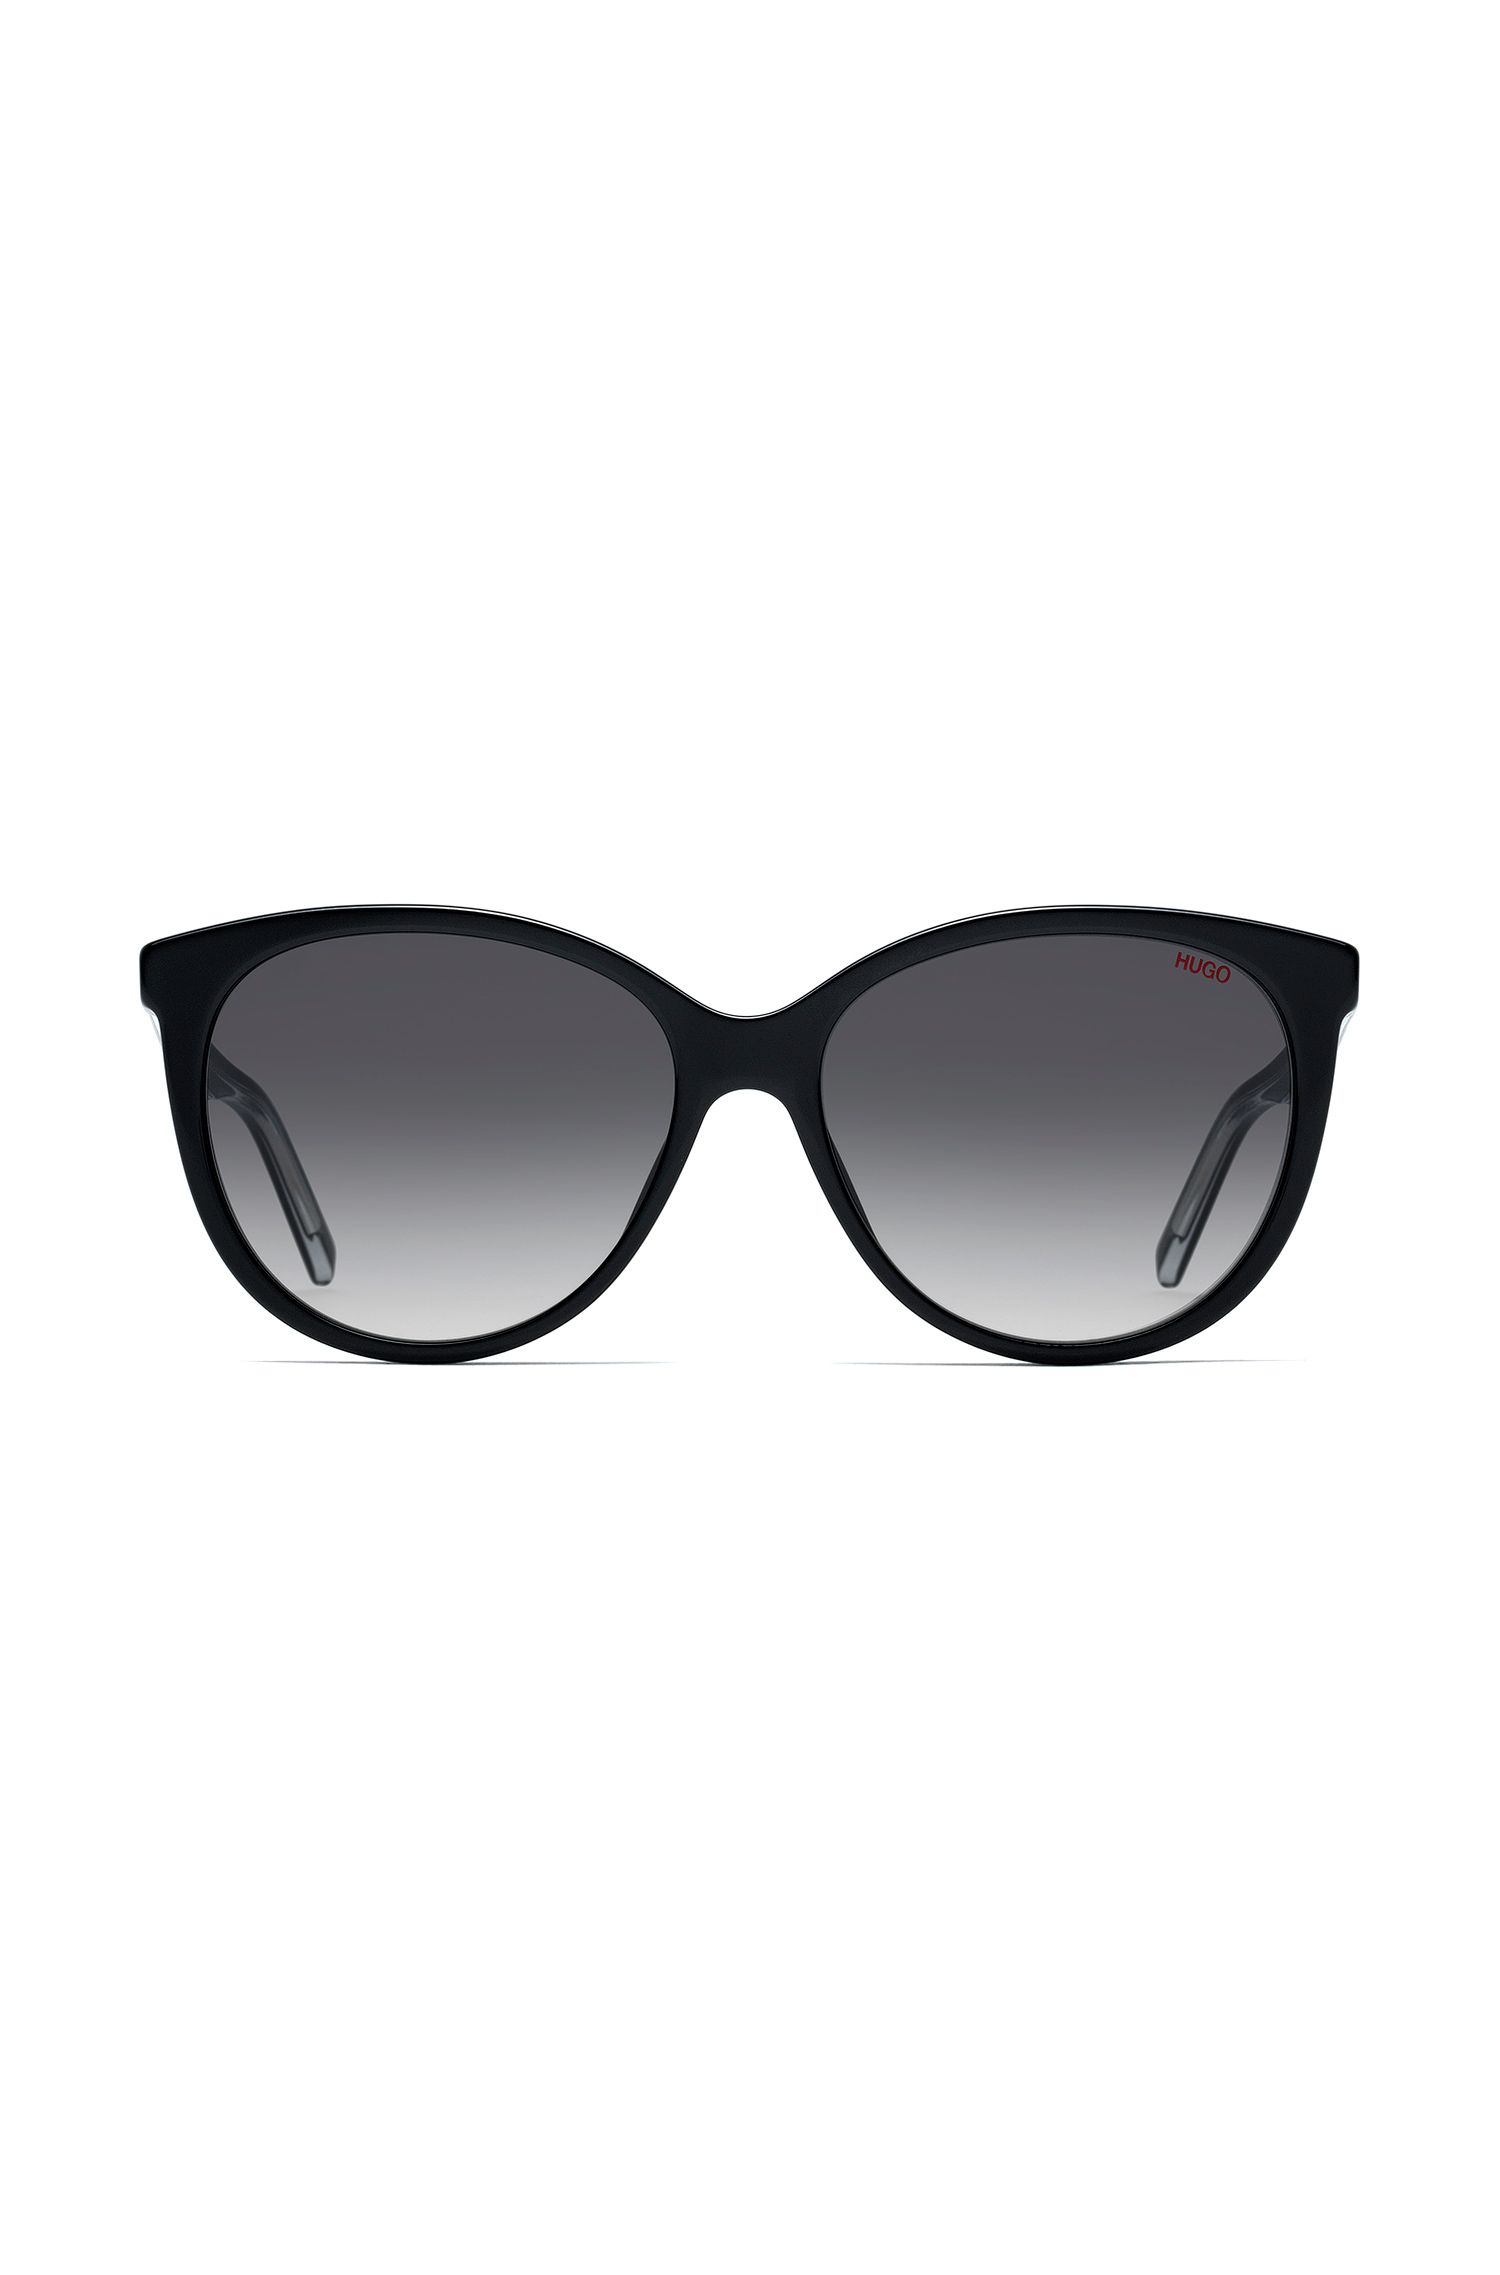 Reverse-logo sunglasses in black acetate, Black